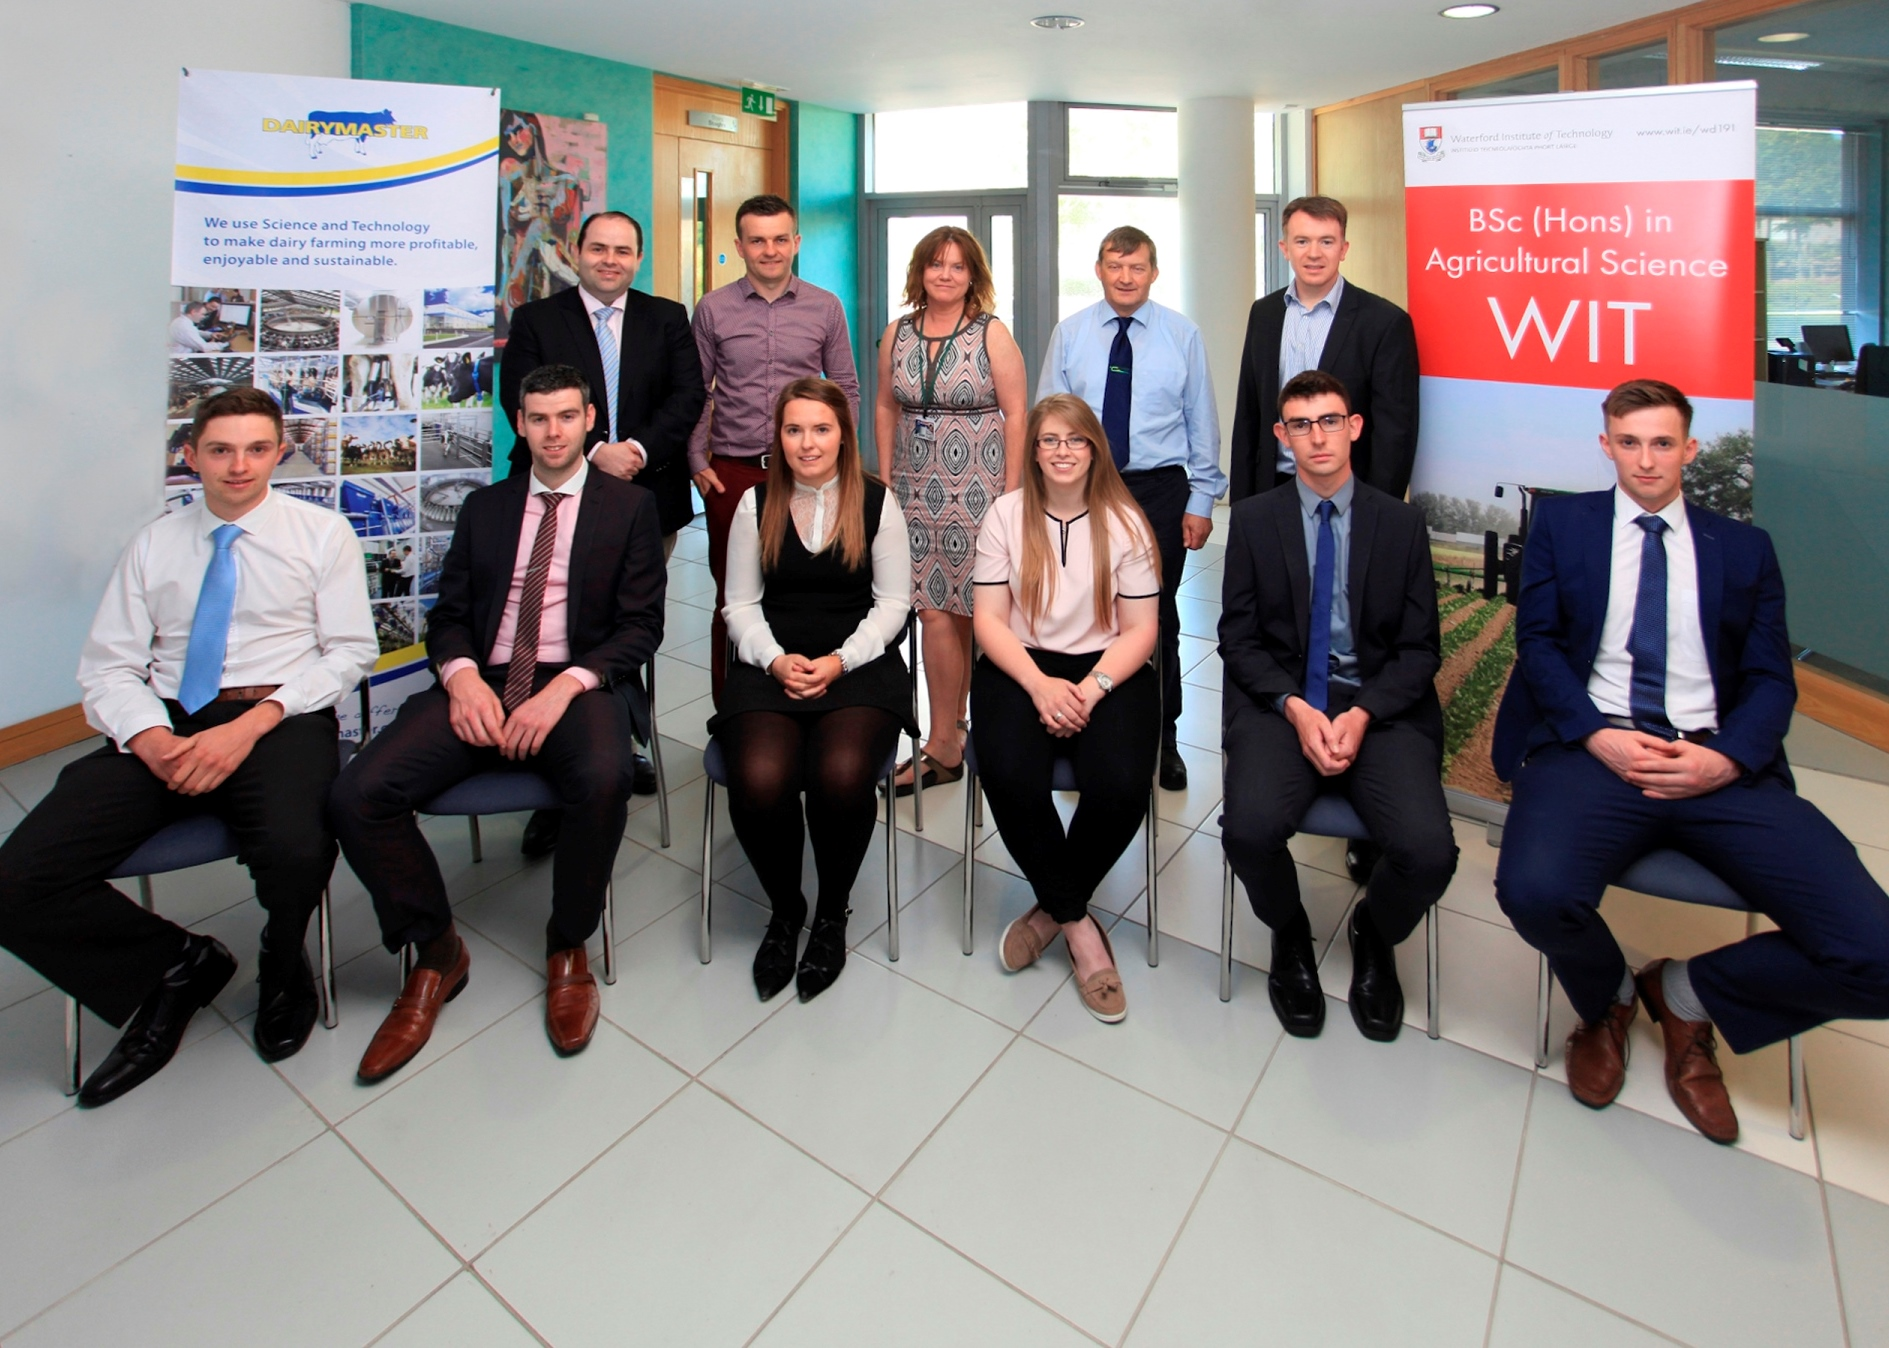 Front L-R: John Molloy (award winner), Tom Murray (finalist), Áine Butler (award winner), Sarah Fitzgerald (finalist), Eoin Finnegan (finalist), Seán Murphy (finalist). Back: Dr. Edmond Harty (CEO Dairymaster), Dr. Michael Breen (course leader), Dr. Orla O'Donovan (Head. Of Dept. of Science, ), Mr. Paul Hennessy (Teagasc, Principal Kildalton Agrcultural College), Dr. John Daly (Dairymaster)